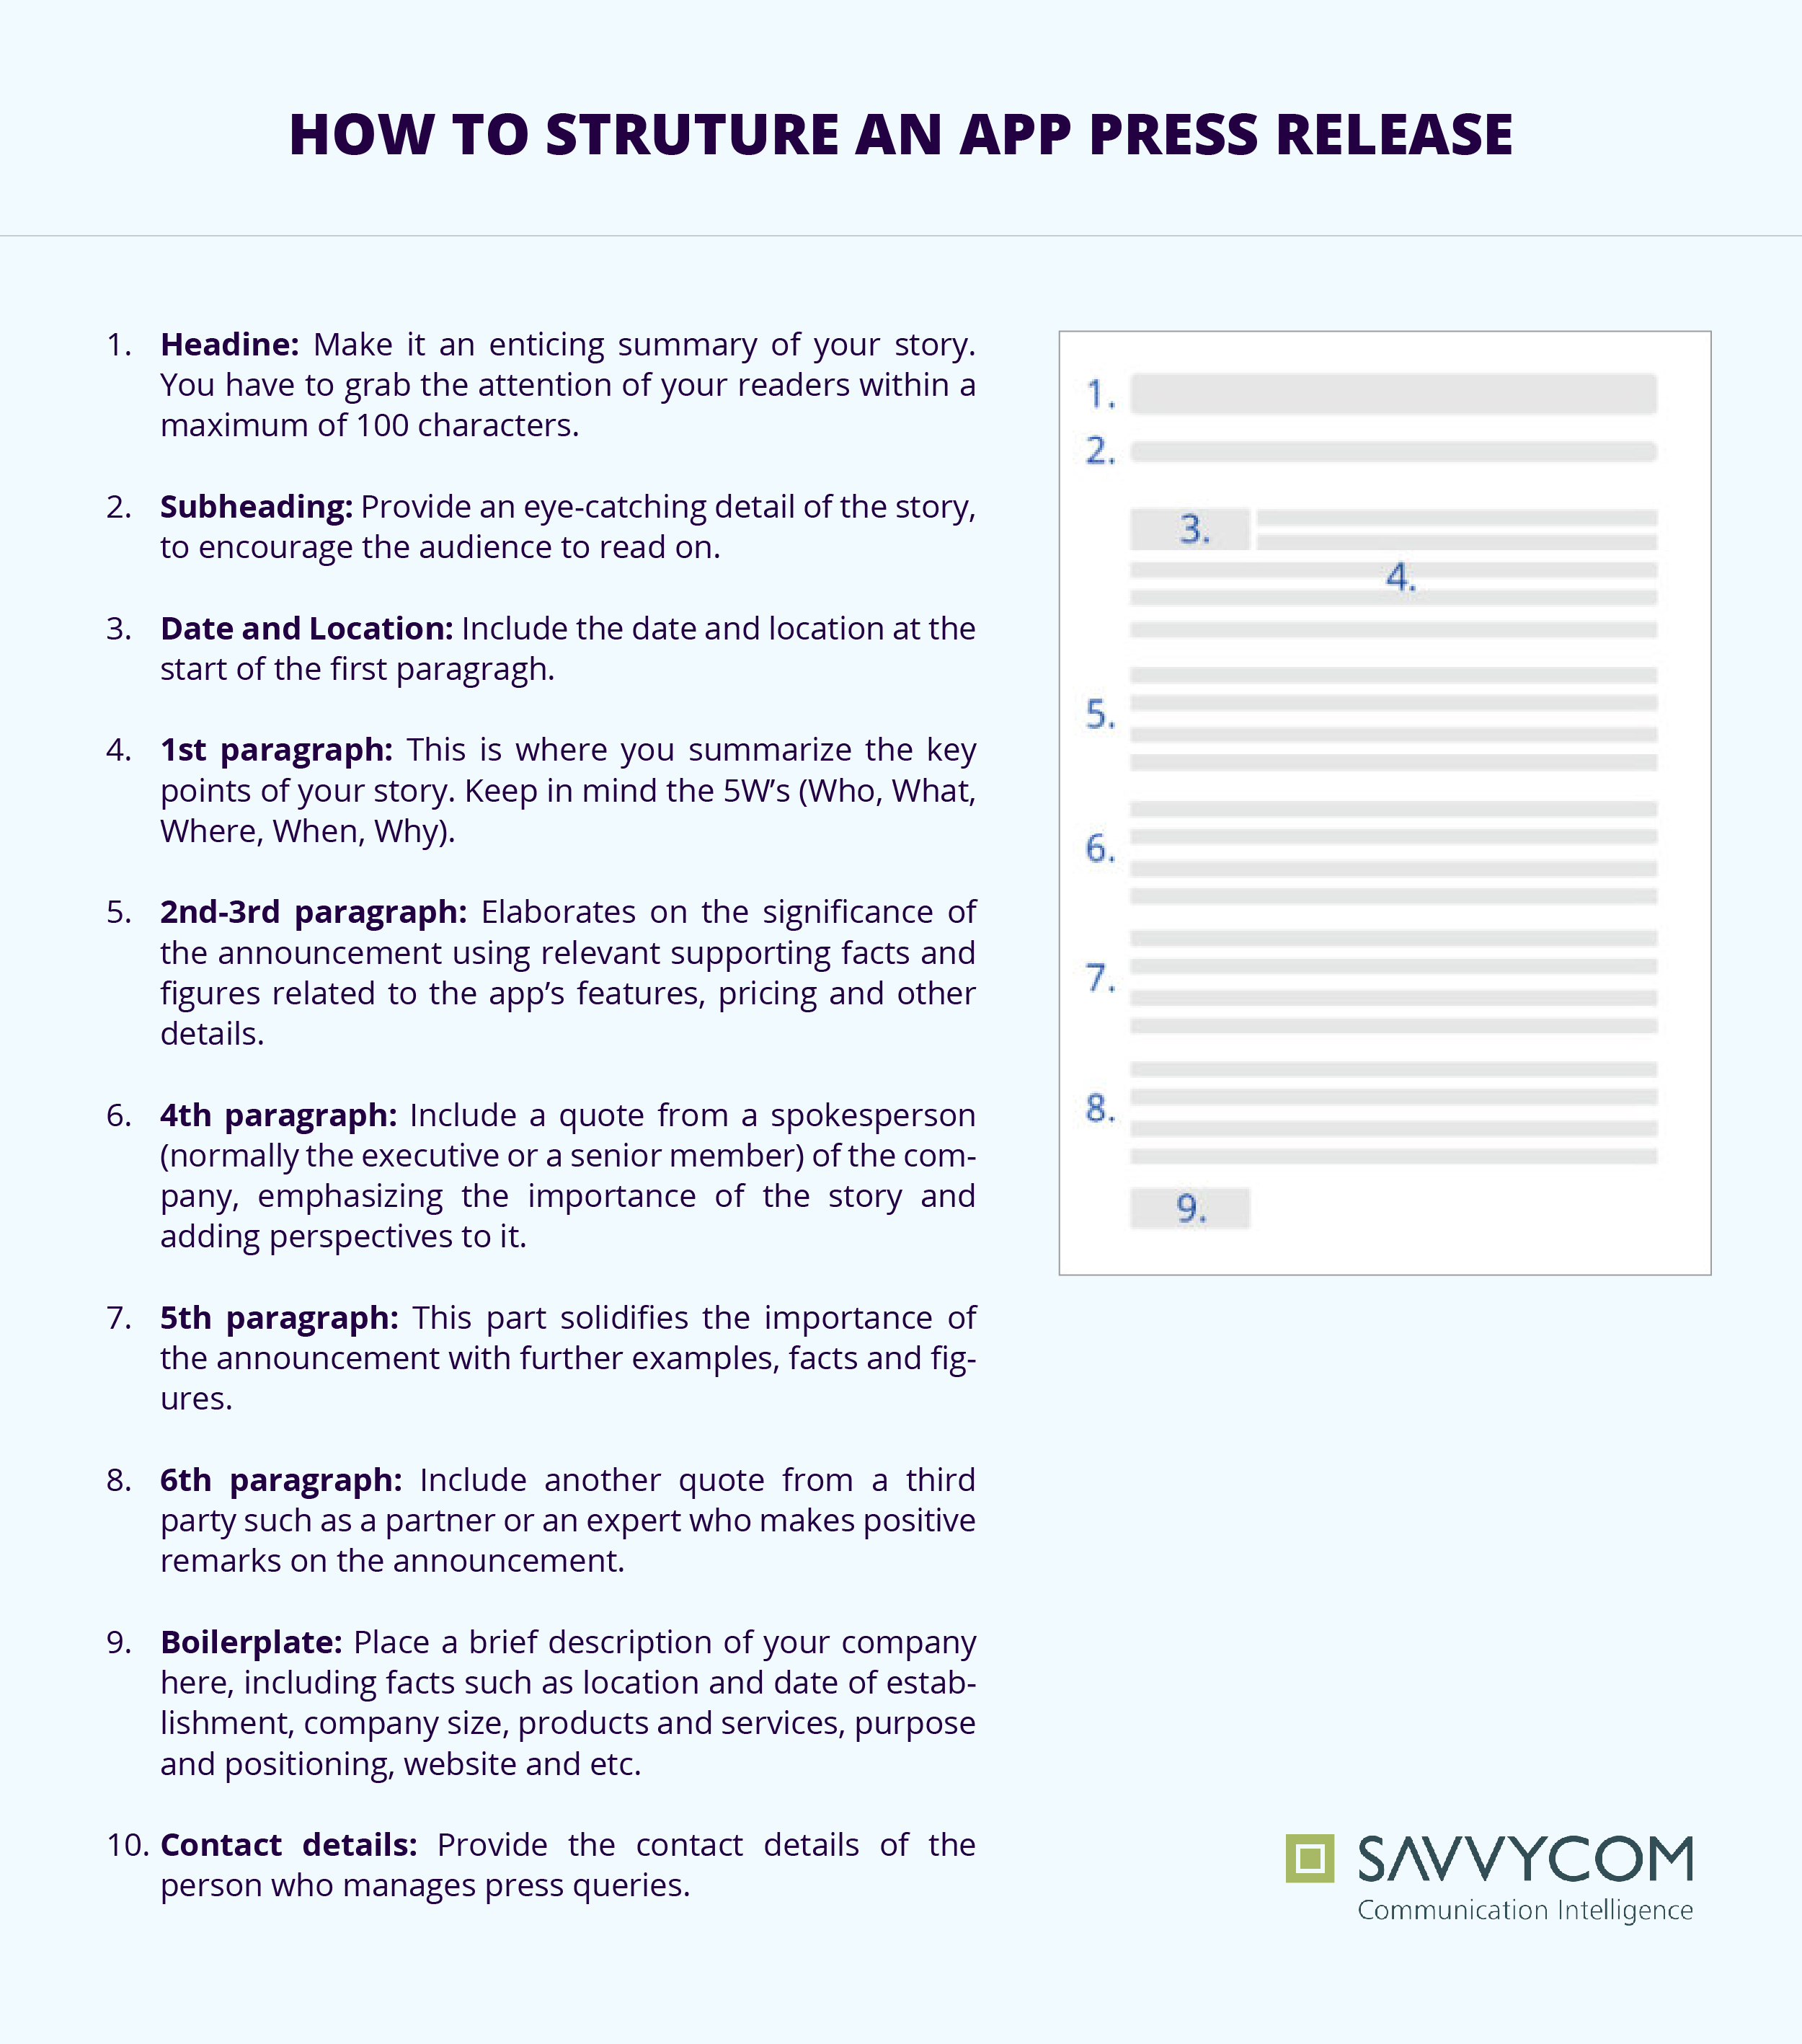 How to Write a Top-Notch Press Release for Your New Mobile App Launch [Free Template Real Examples]